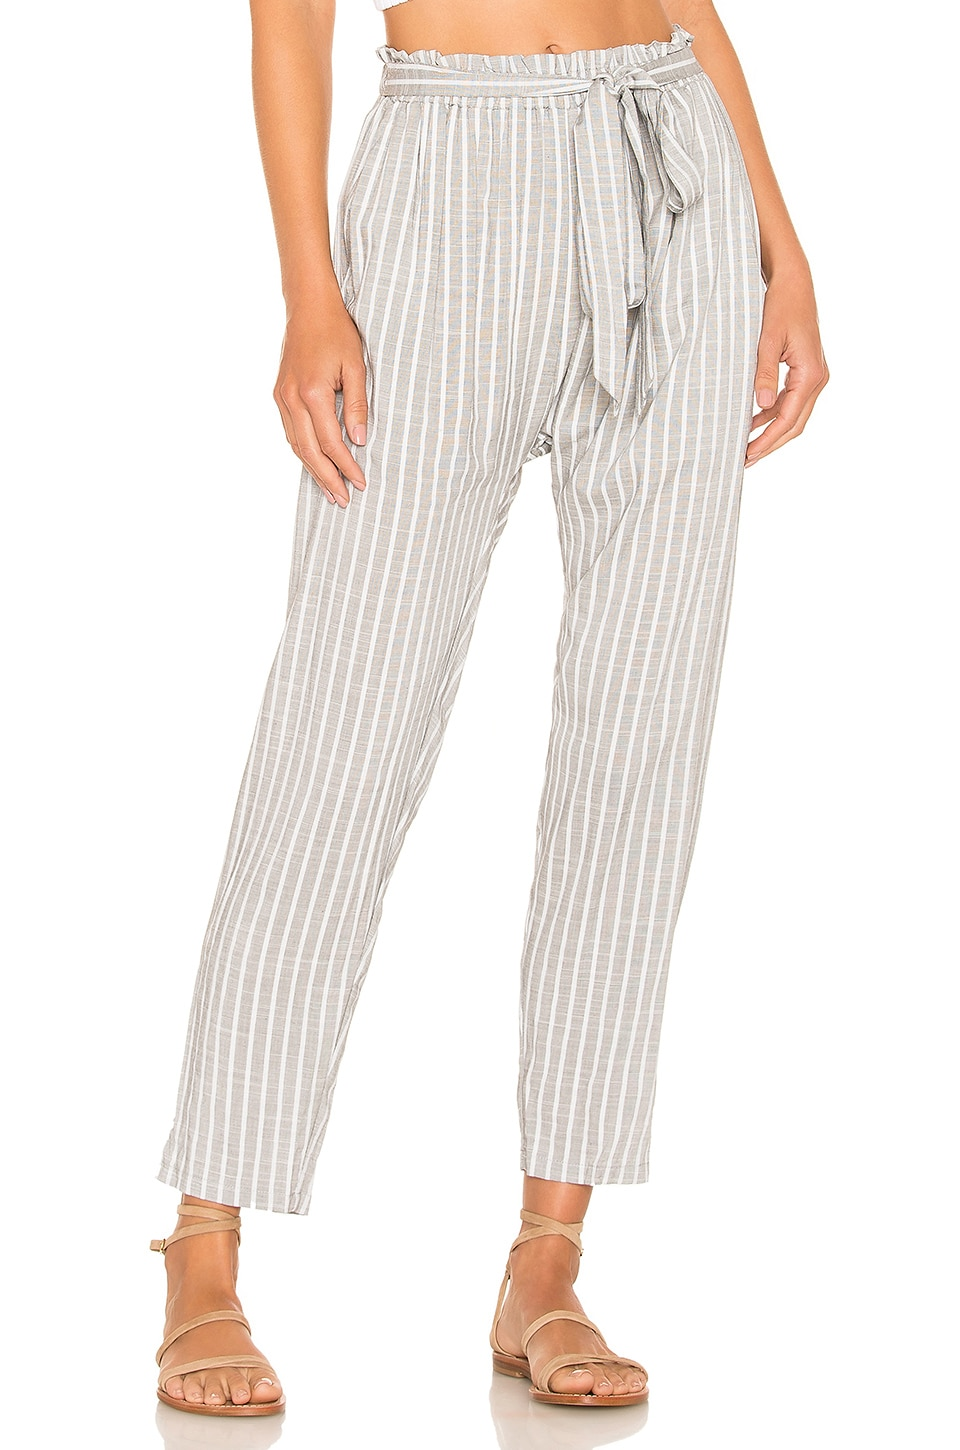 eberjey Amalfi Stripe Hudson Pant in Faded Black & White